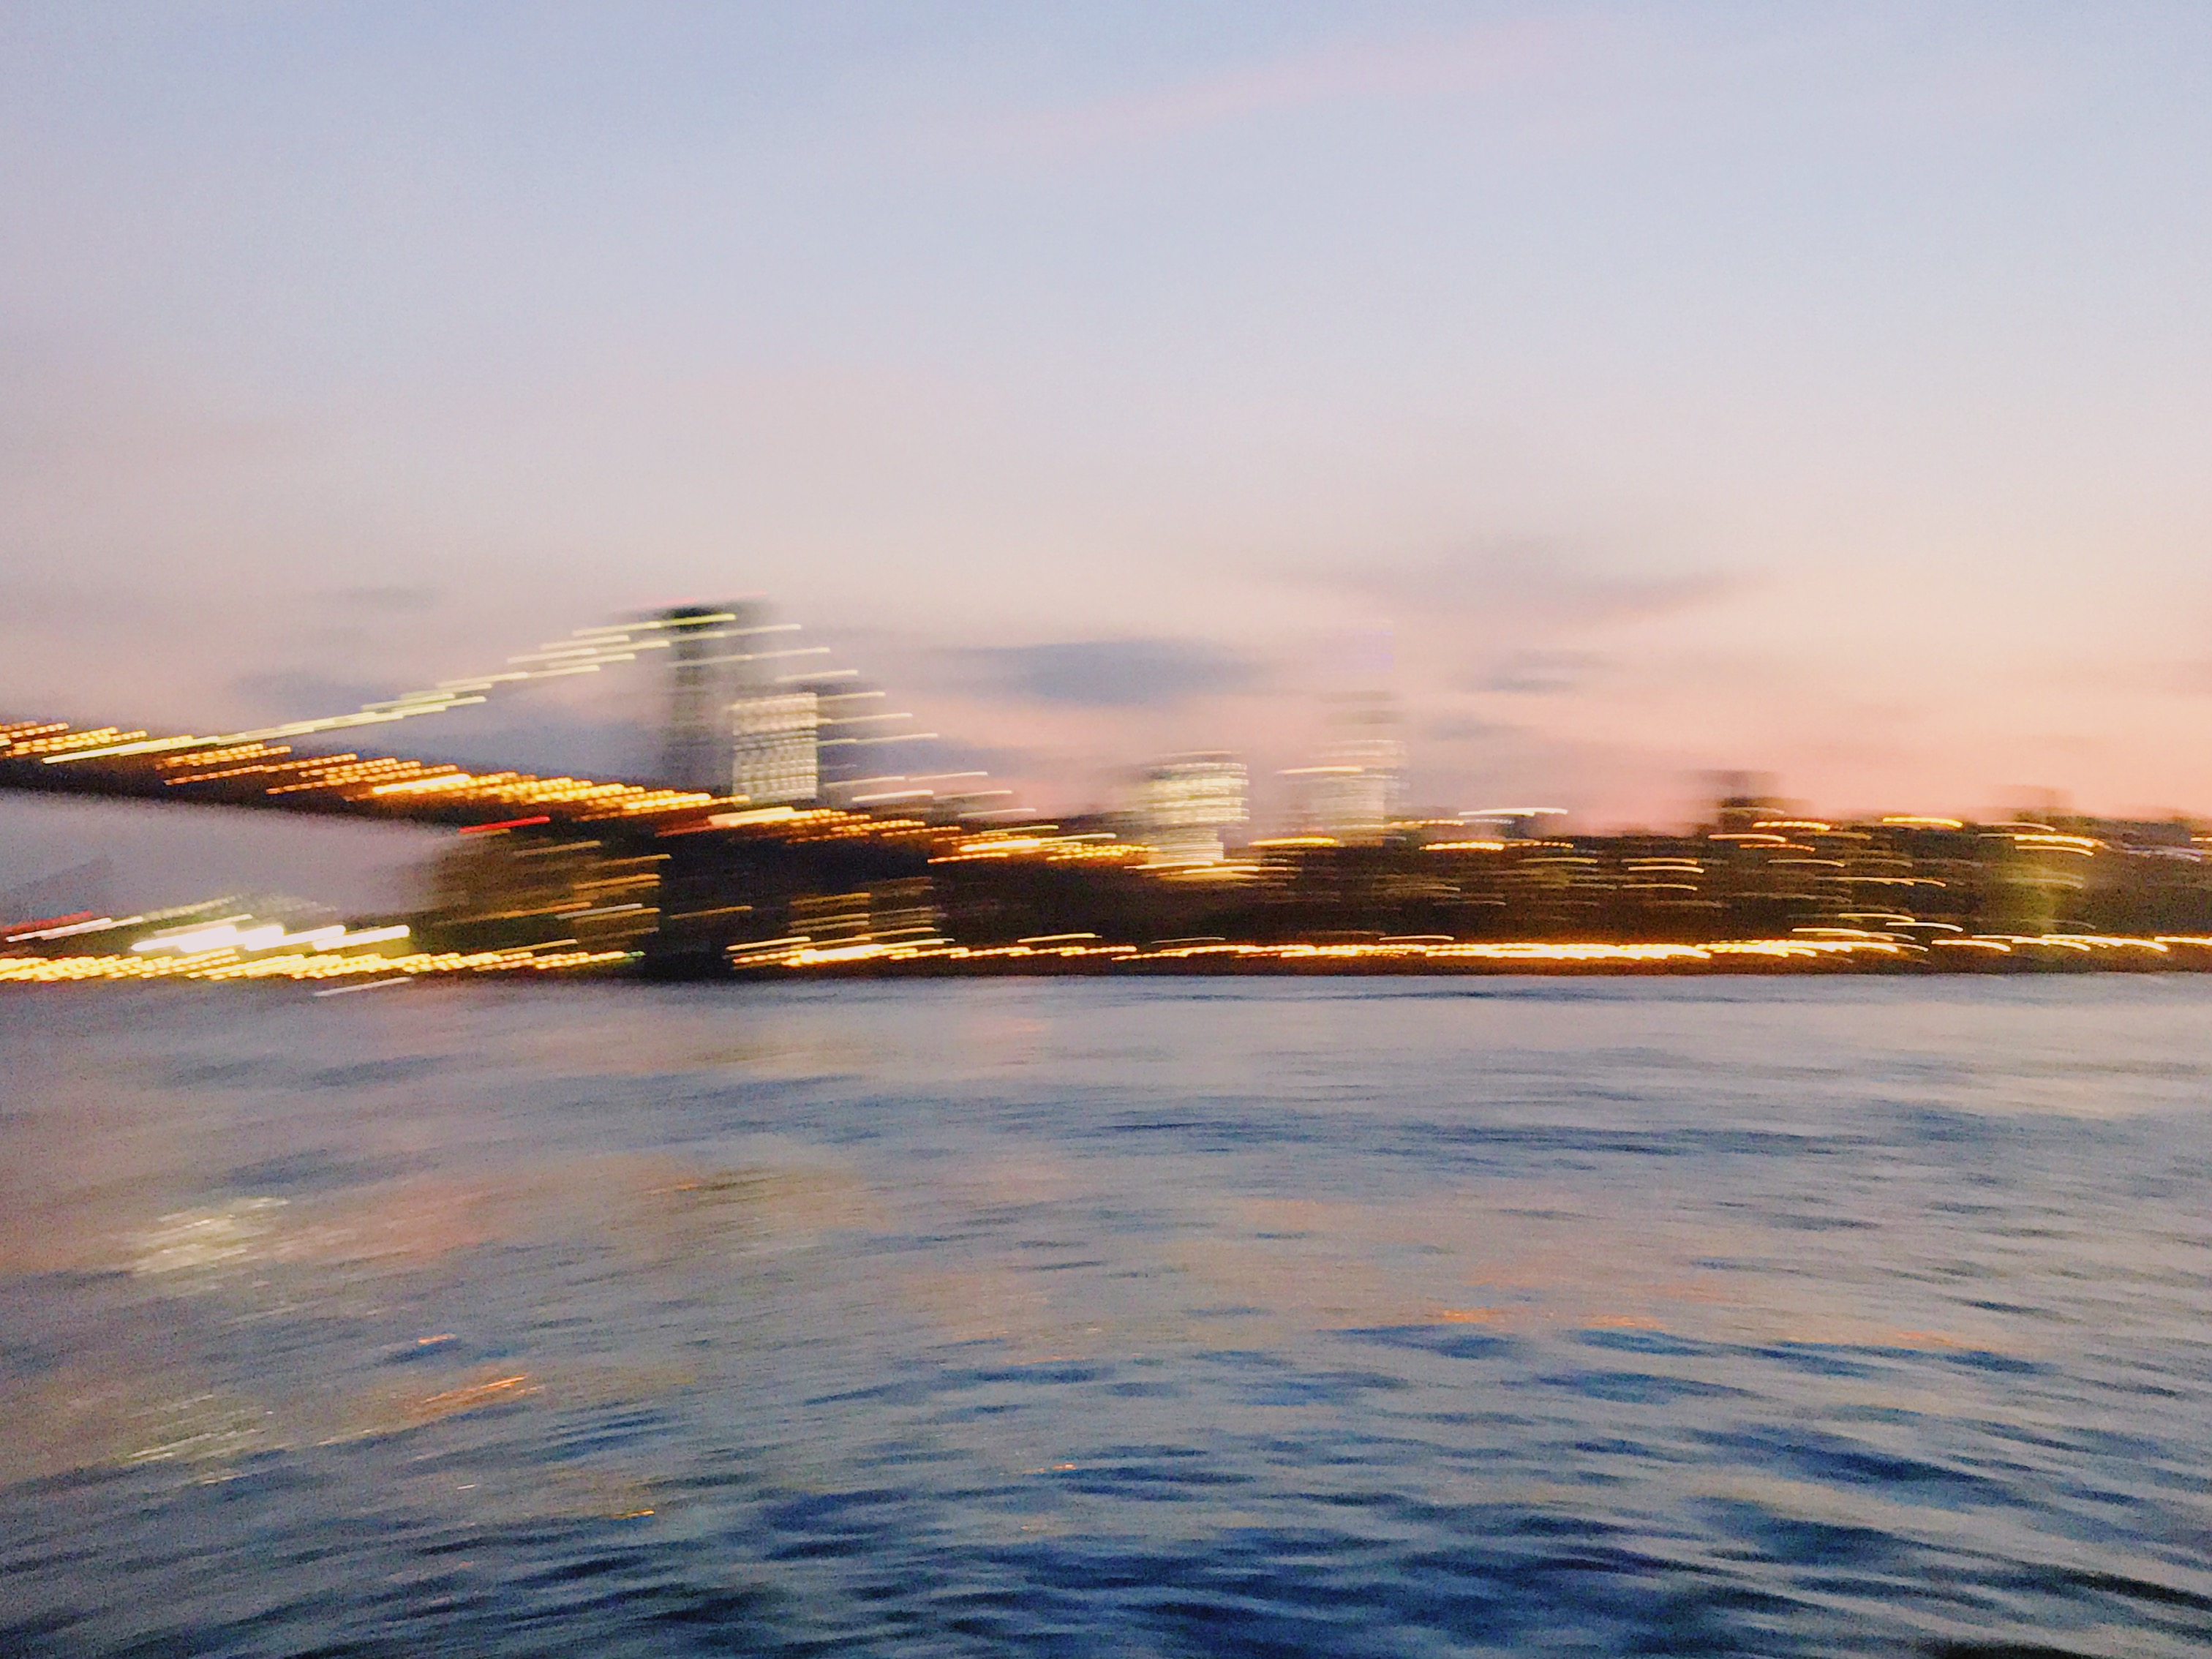 Lucy Laucht blurred photo of bridge and city skyline